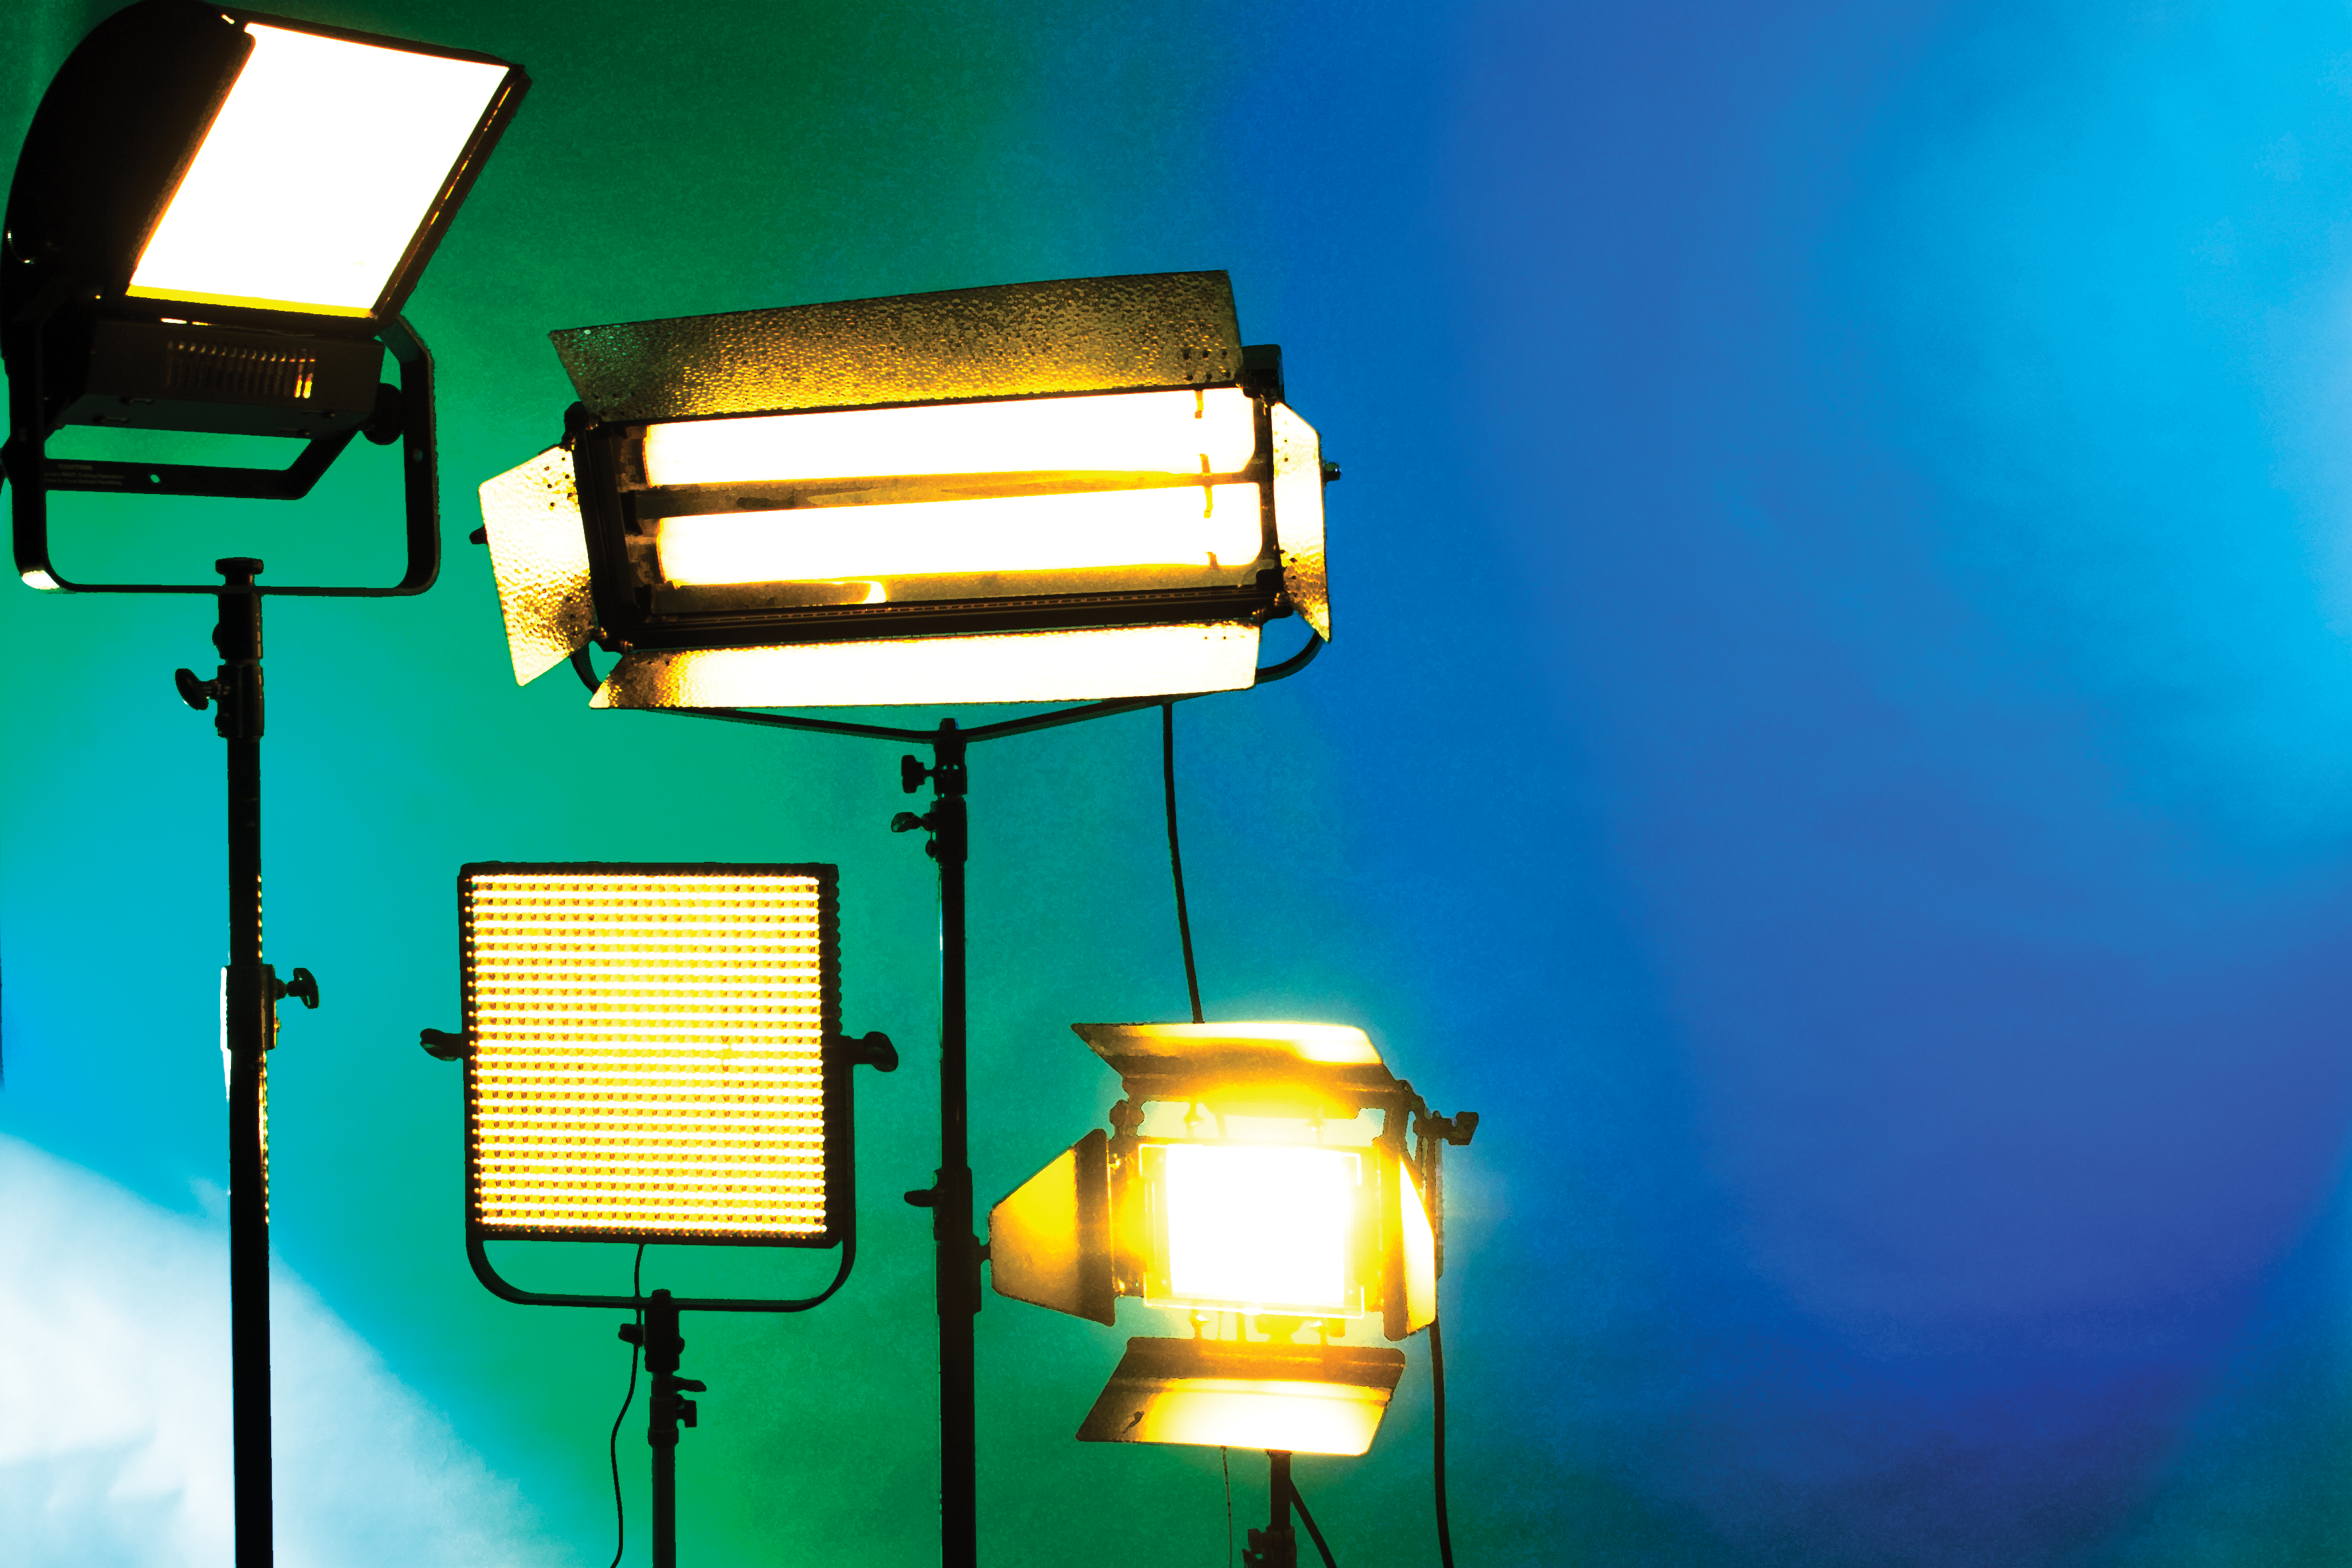 Lighting Solutions  Choosing the Correct Light Source   Videomaker com. Base Lighting And Fire Limited. Home Design Ideas